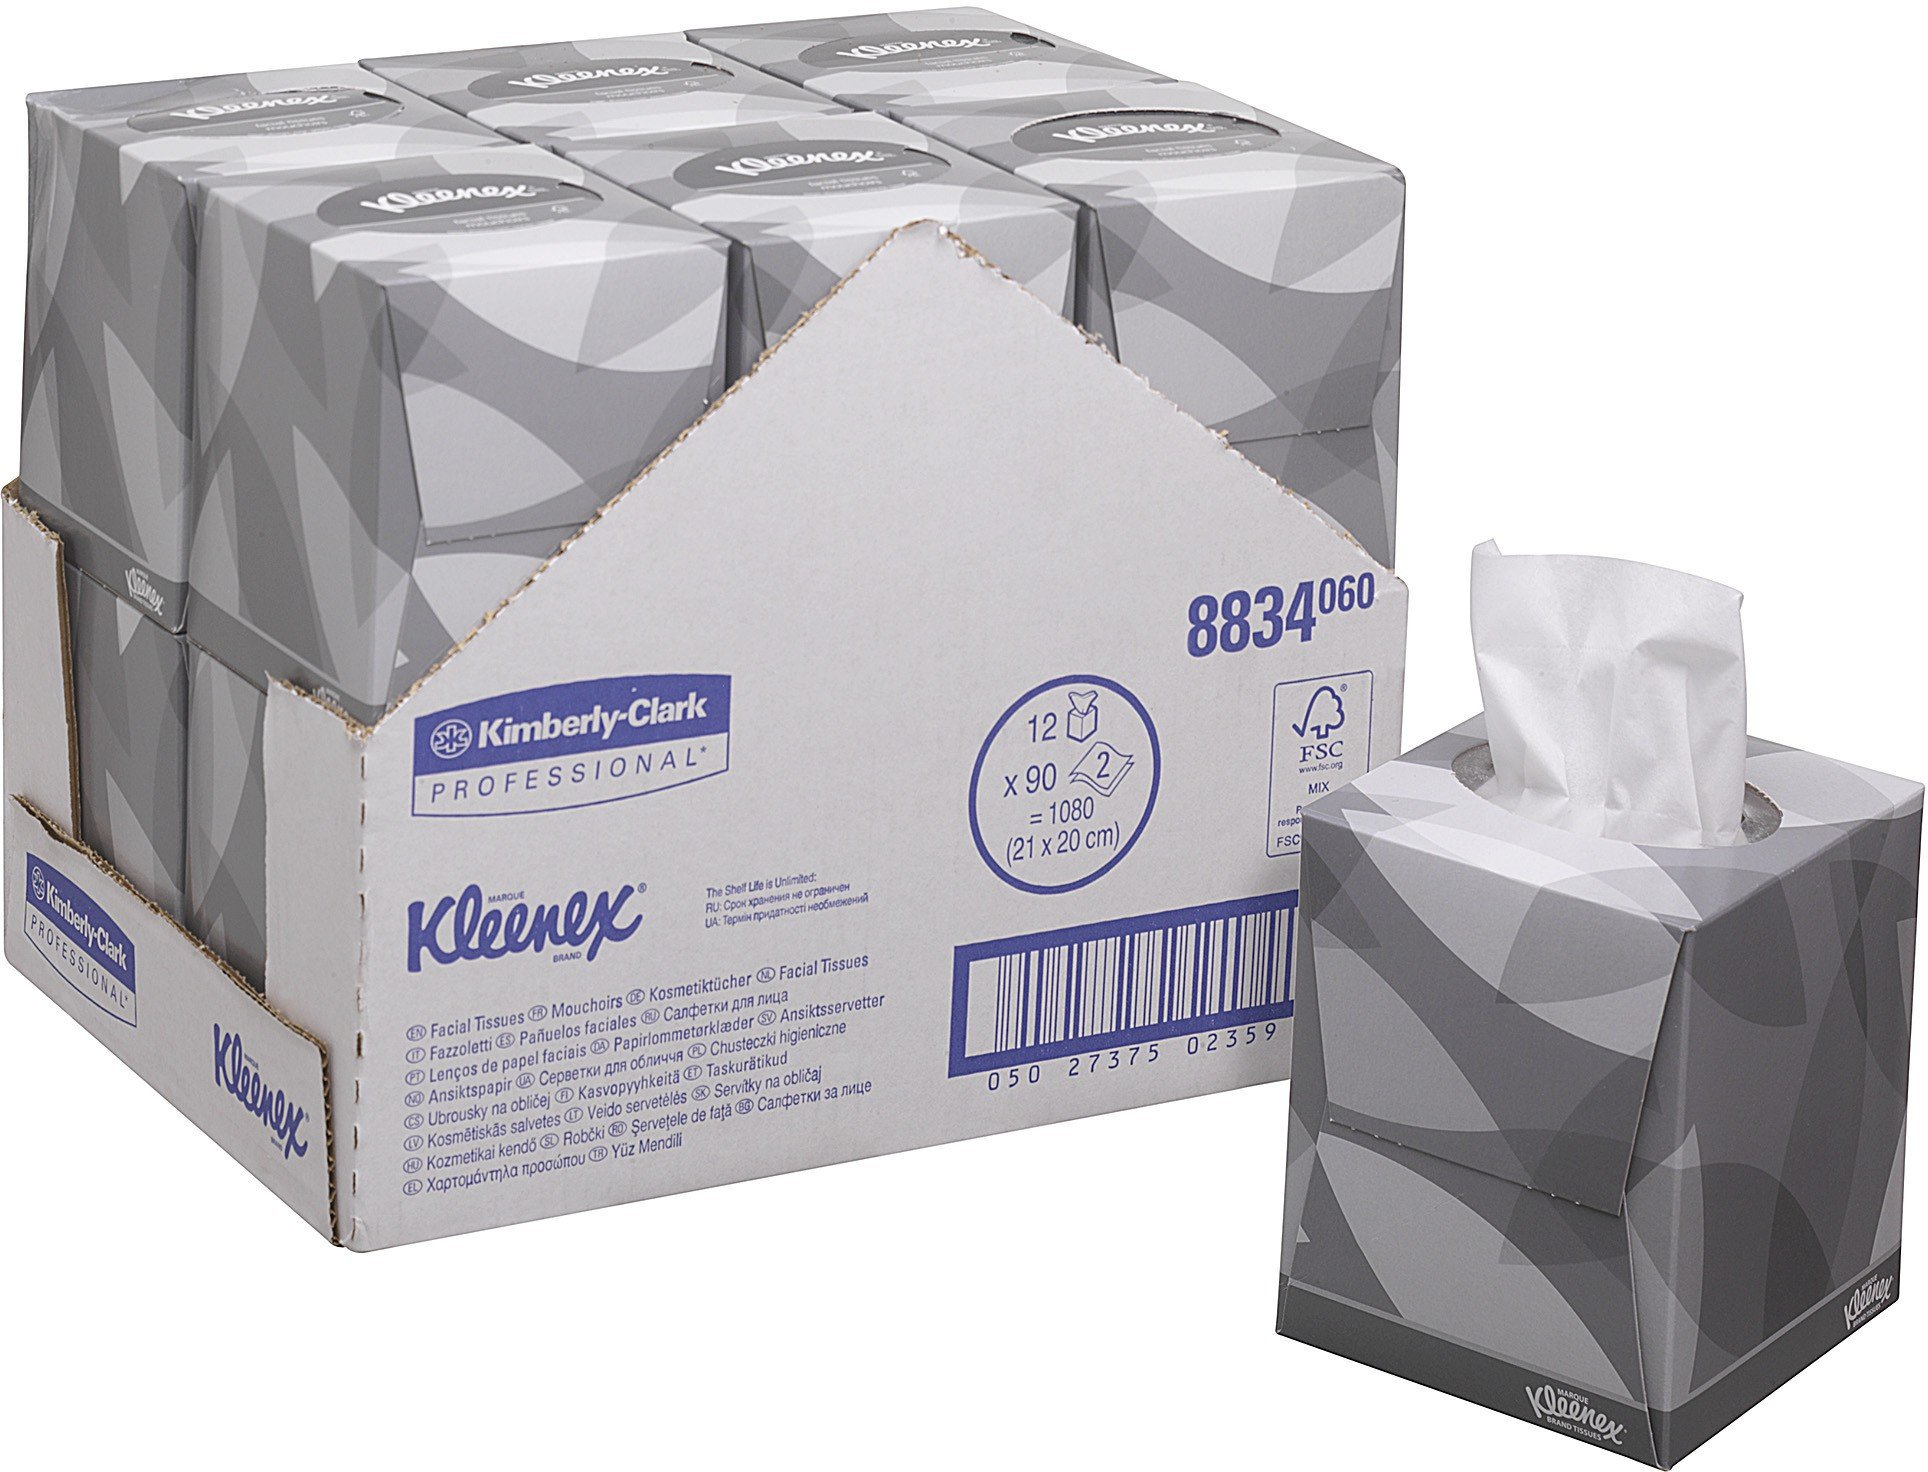 kleenex kosmetikt cher w rfel box 1 karton 12 boxen 90 st ck 1080 kosmetikt cher online. Black Bedroom Furniture Sets. Home Design Ideas